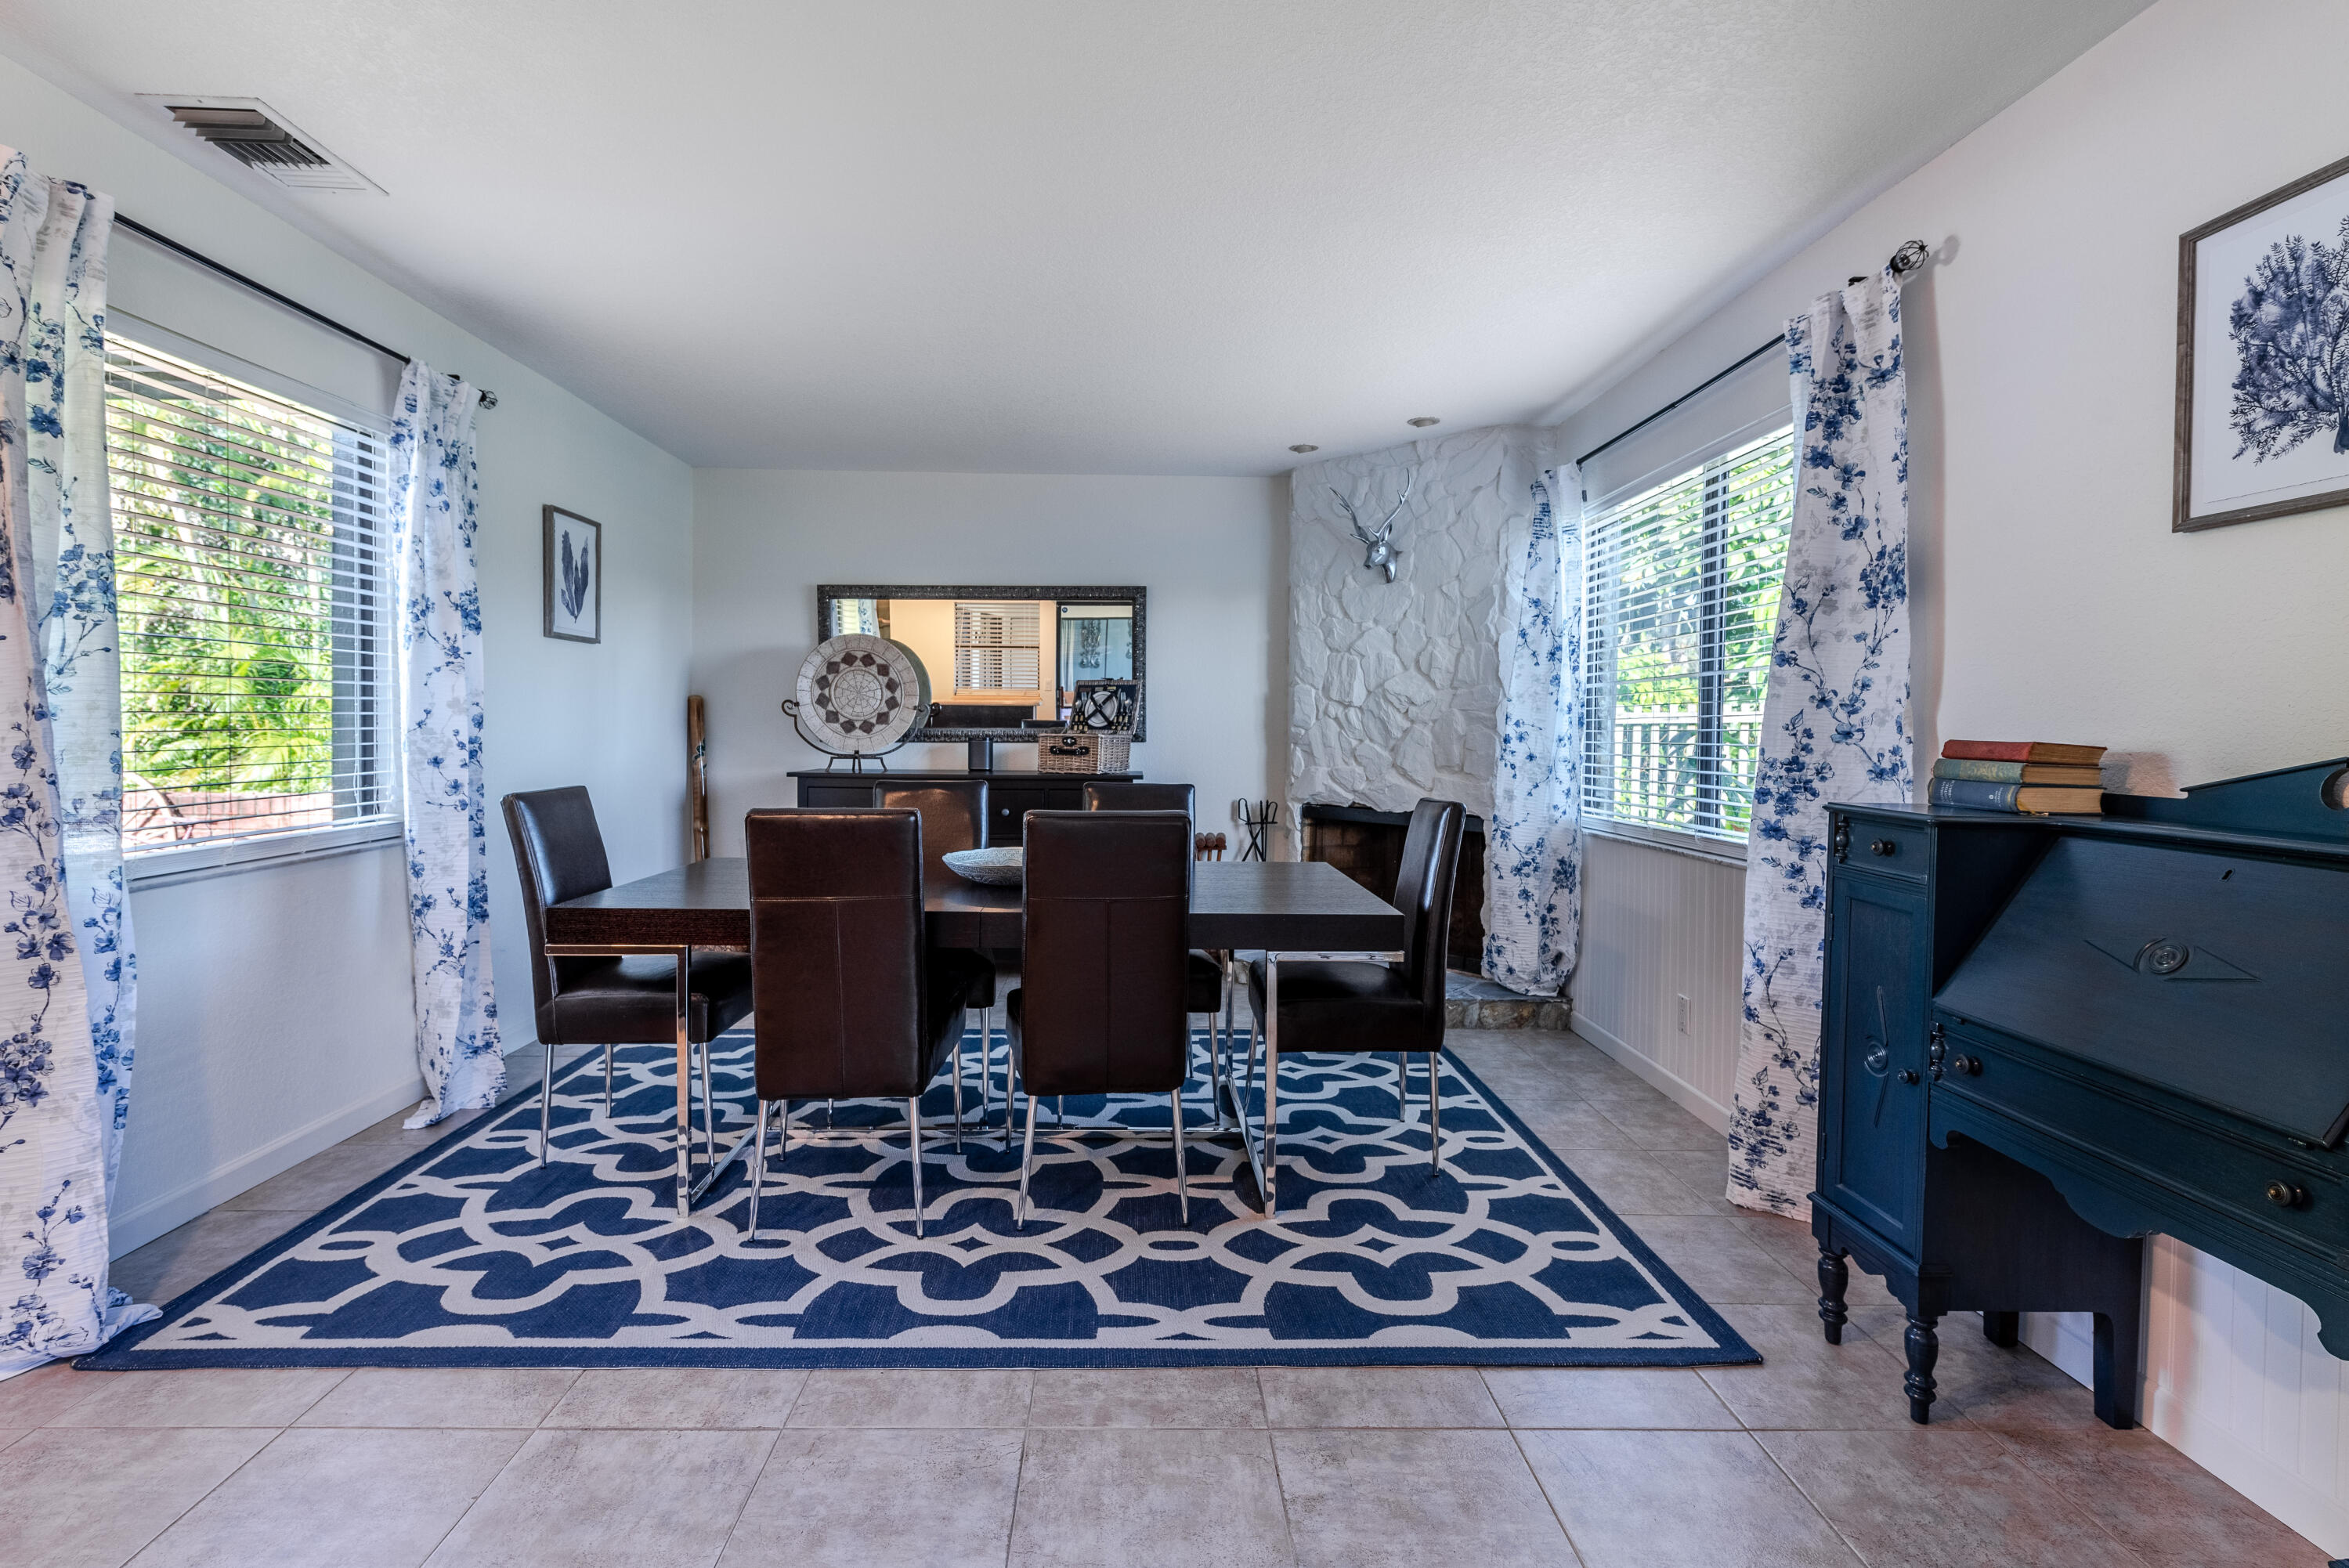 3519 Lakeview Dr (29 of 49)